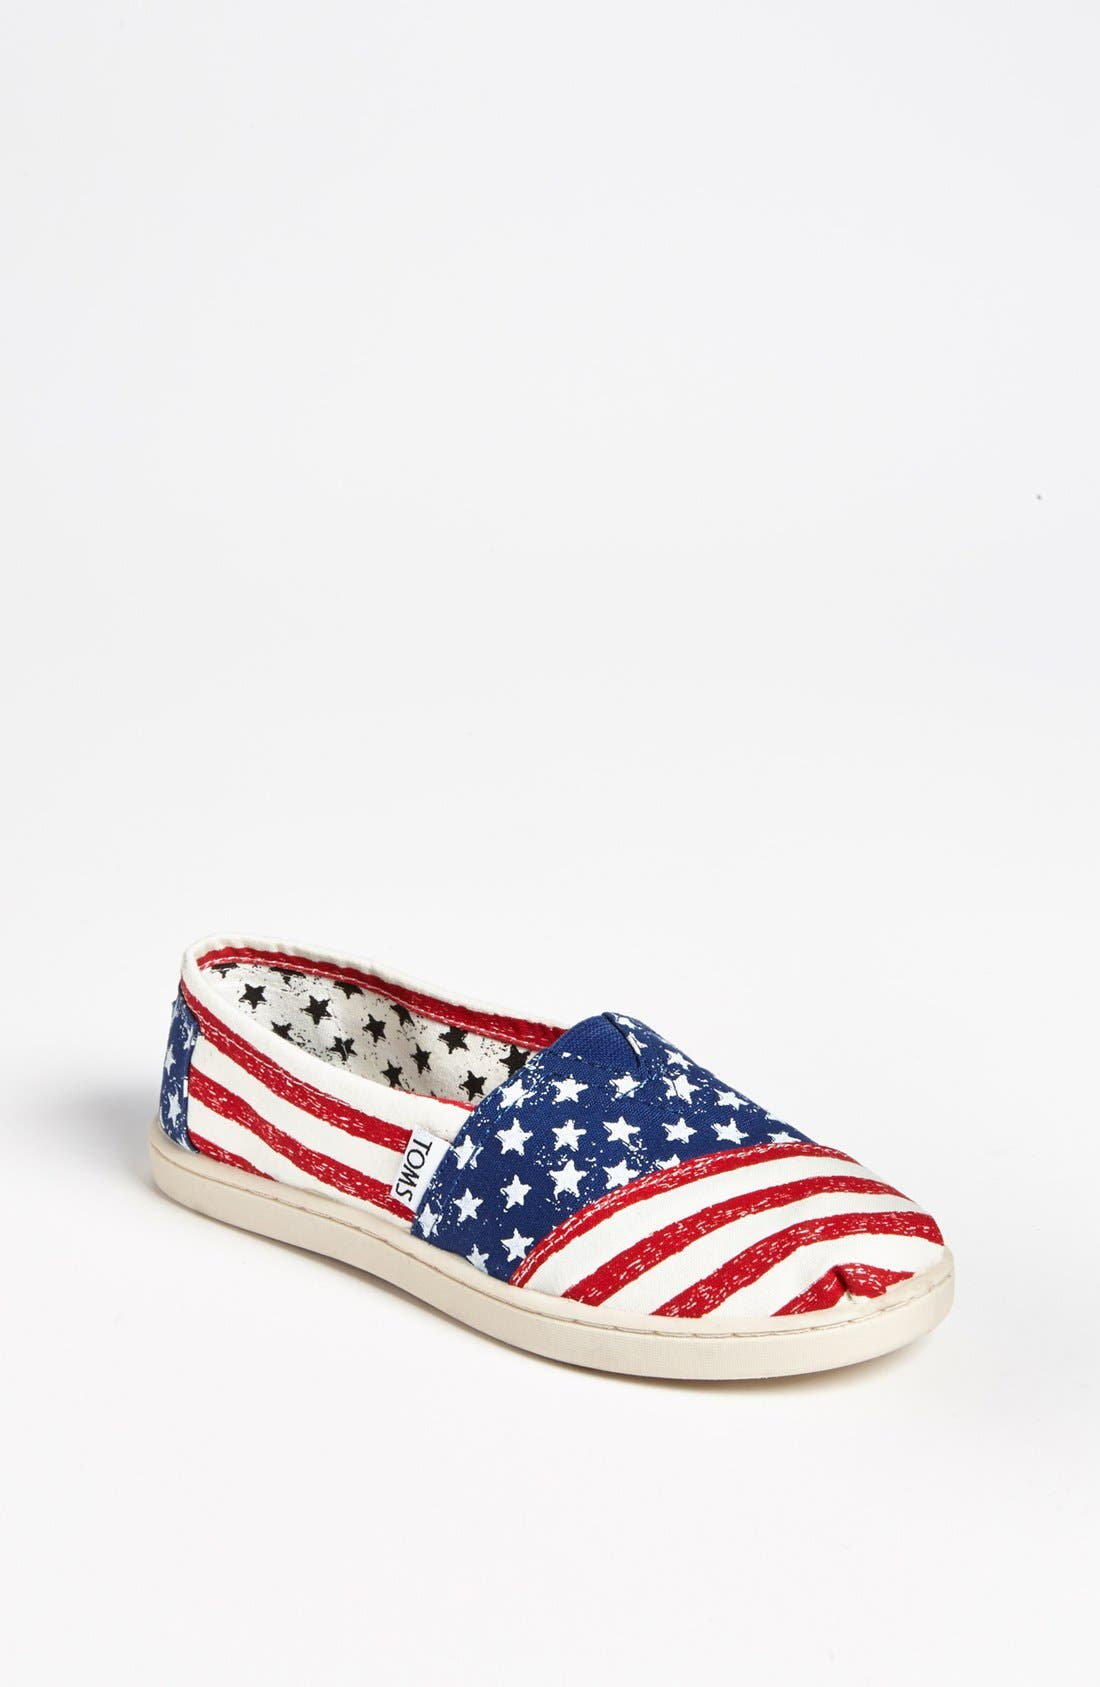 Alternate Image 1 Selected - TOMS 'Classic Youth - Stars & Stripes' Slip-On (Toddler, Little Kid & Big Kid)